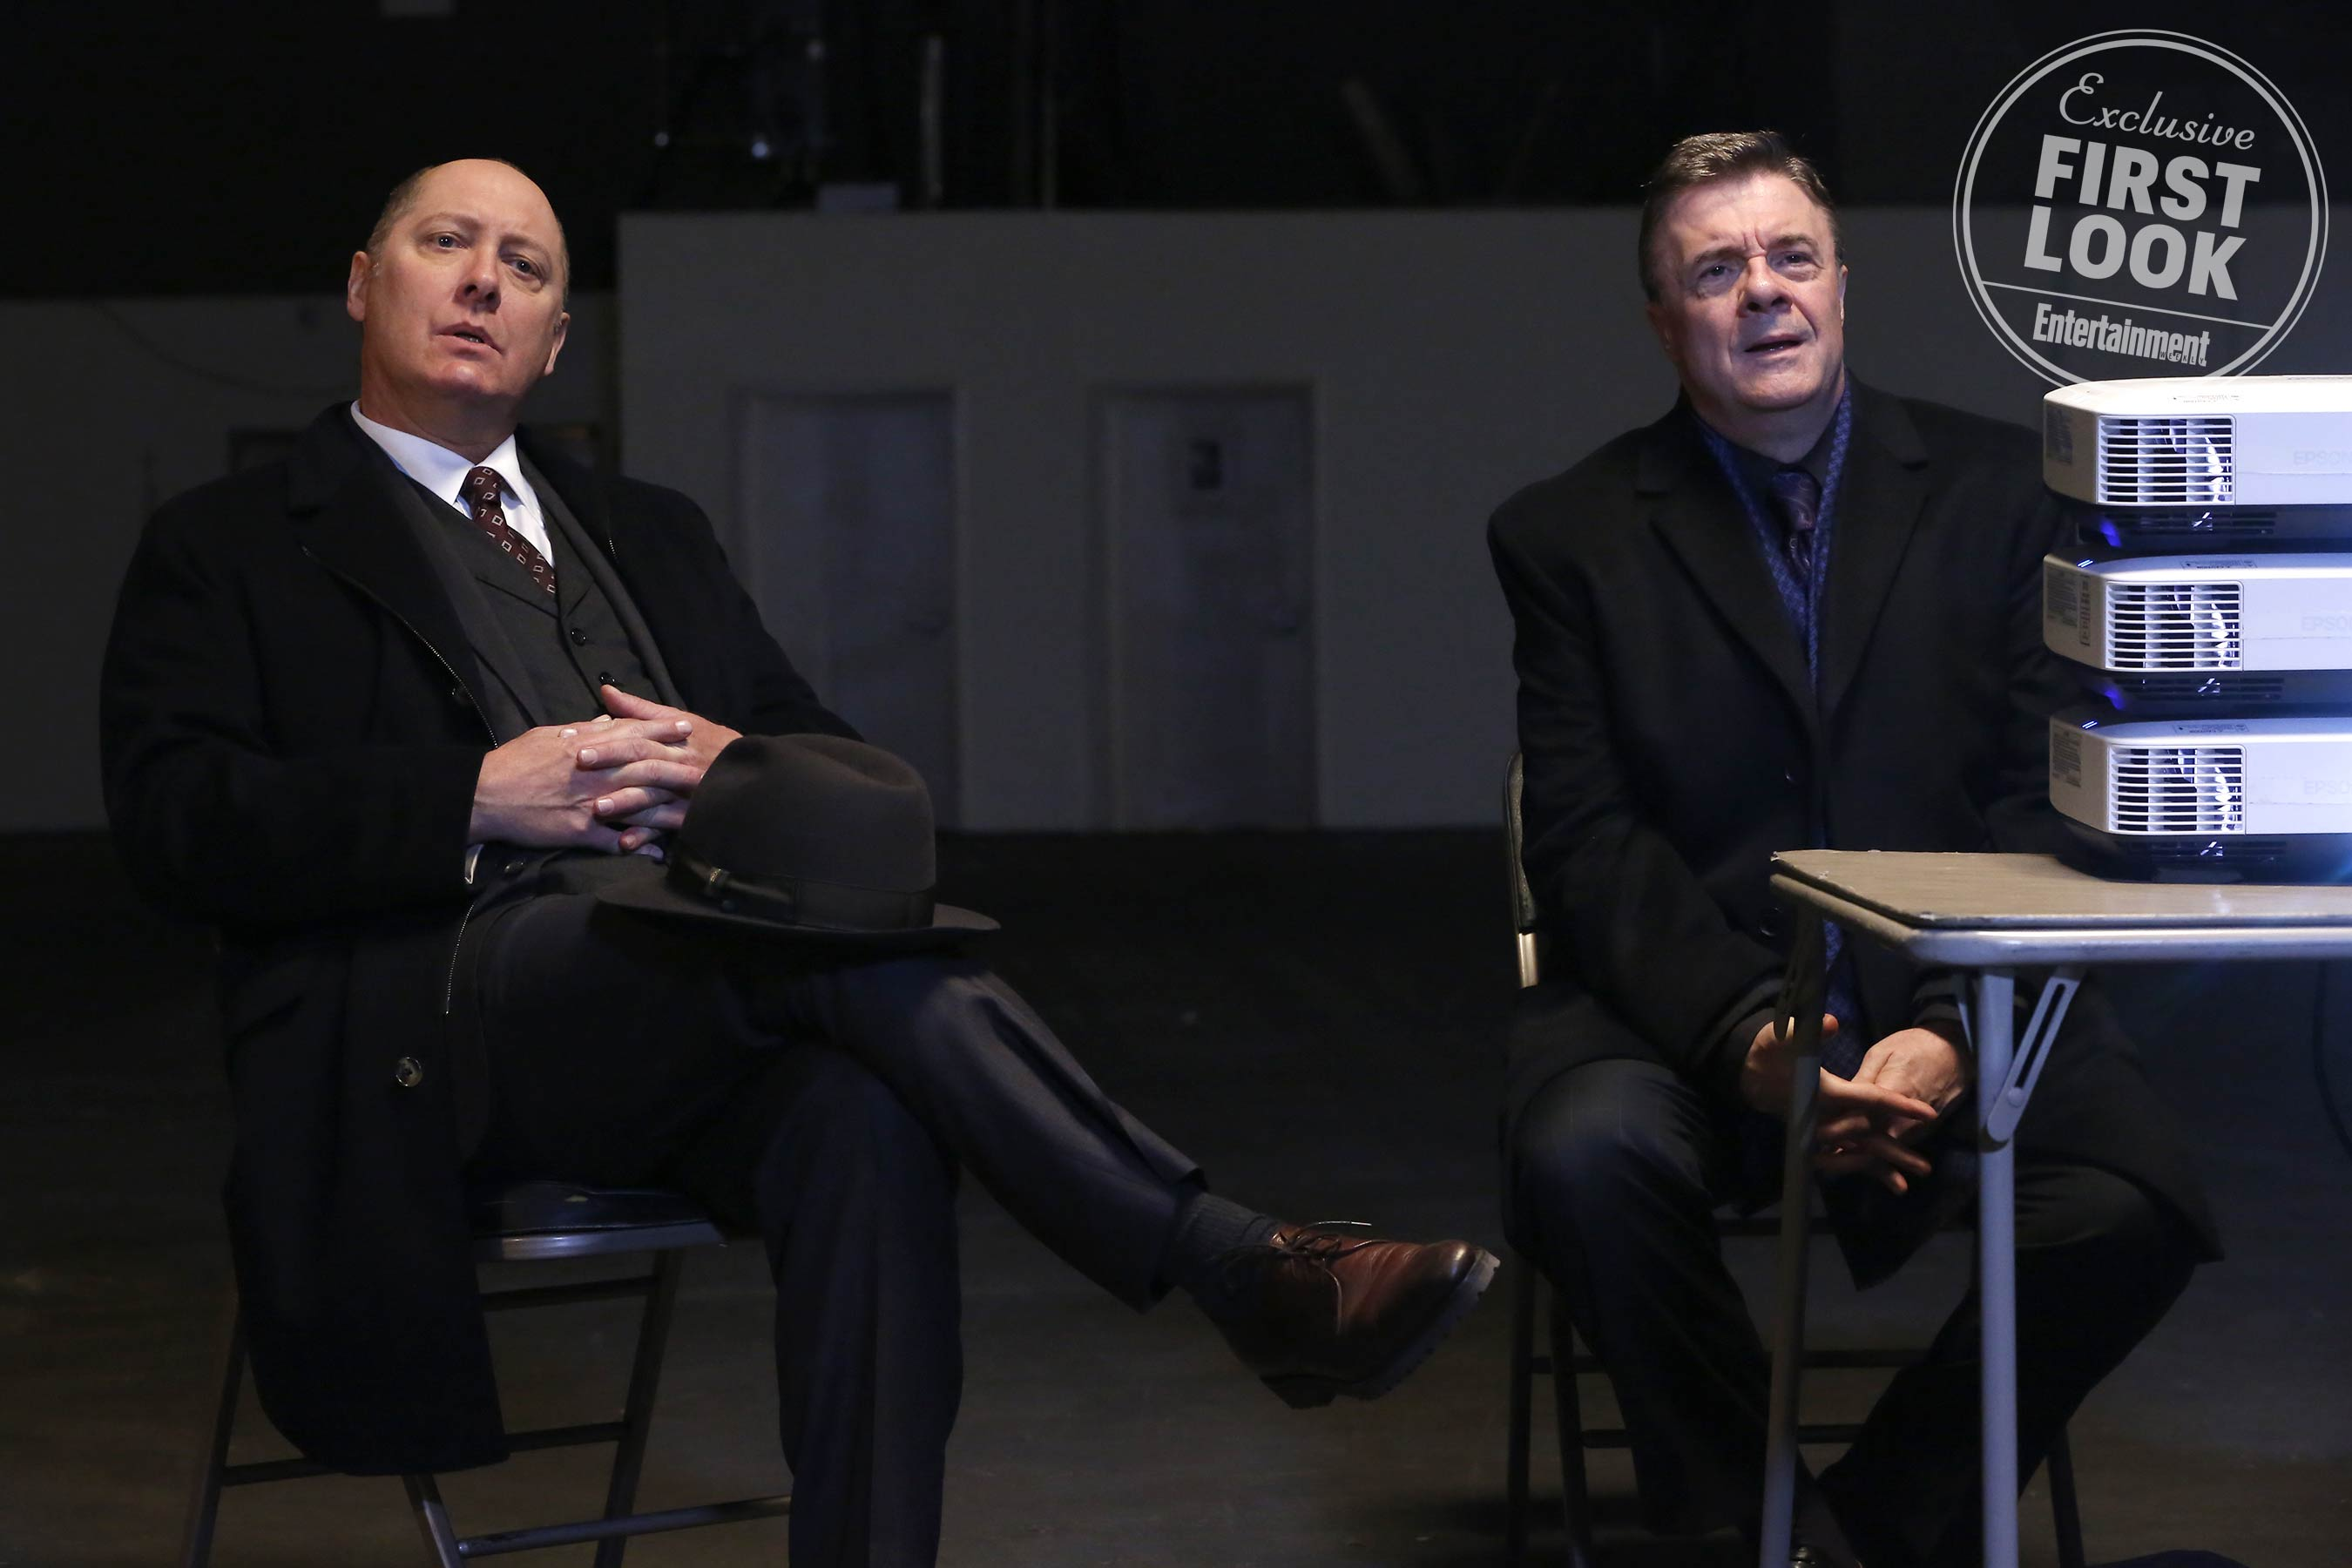 The Blacklist: James Spader, Megan Boone talk making it to 100 episodes